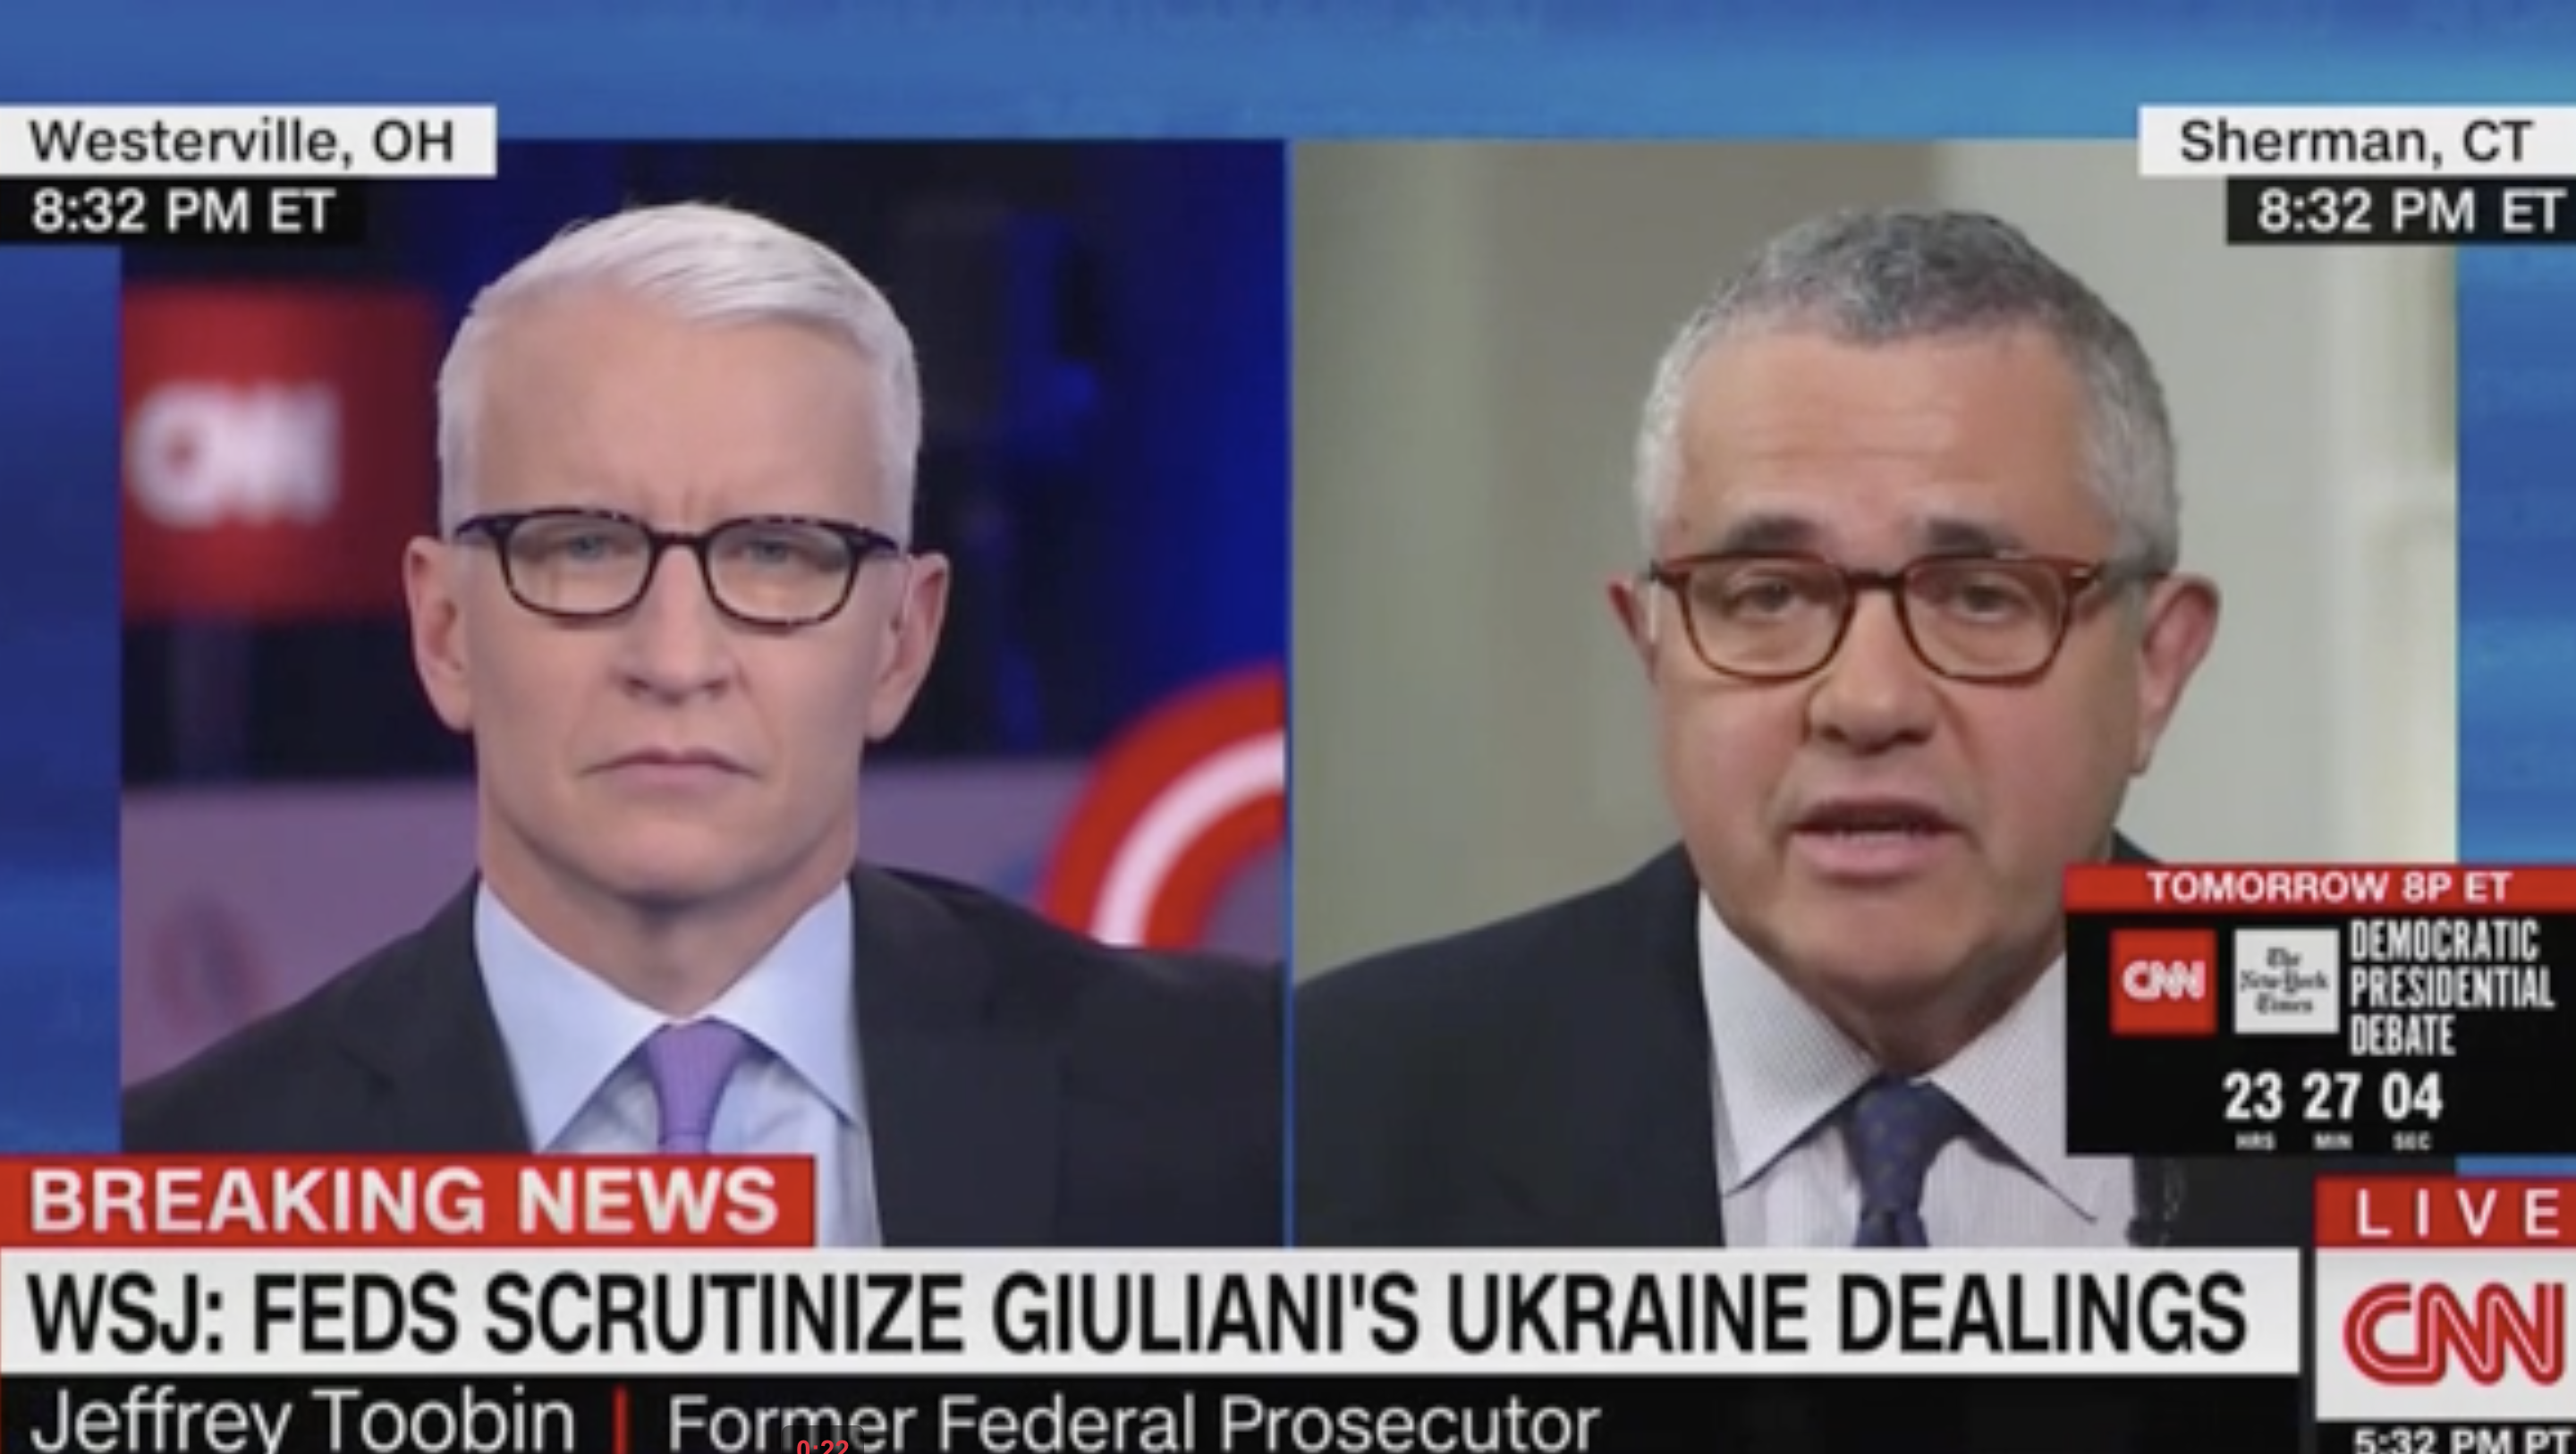 CNN's Jeffrey Toobin: Giuliani 'Hasn't Been Charged' With a Crime and 'May Never Be'